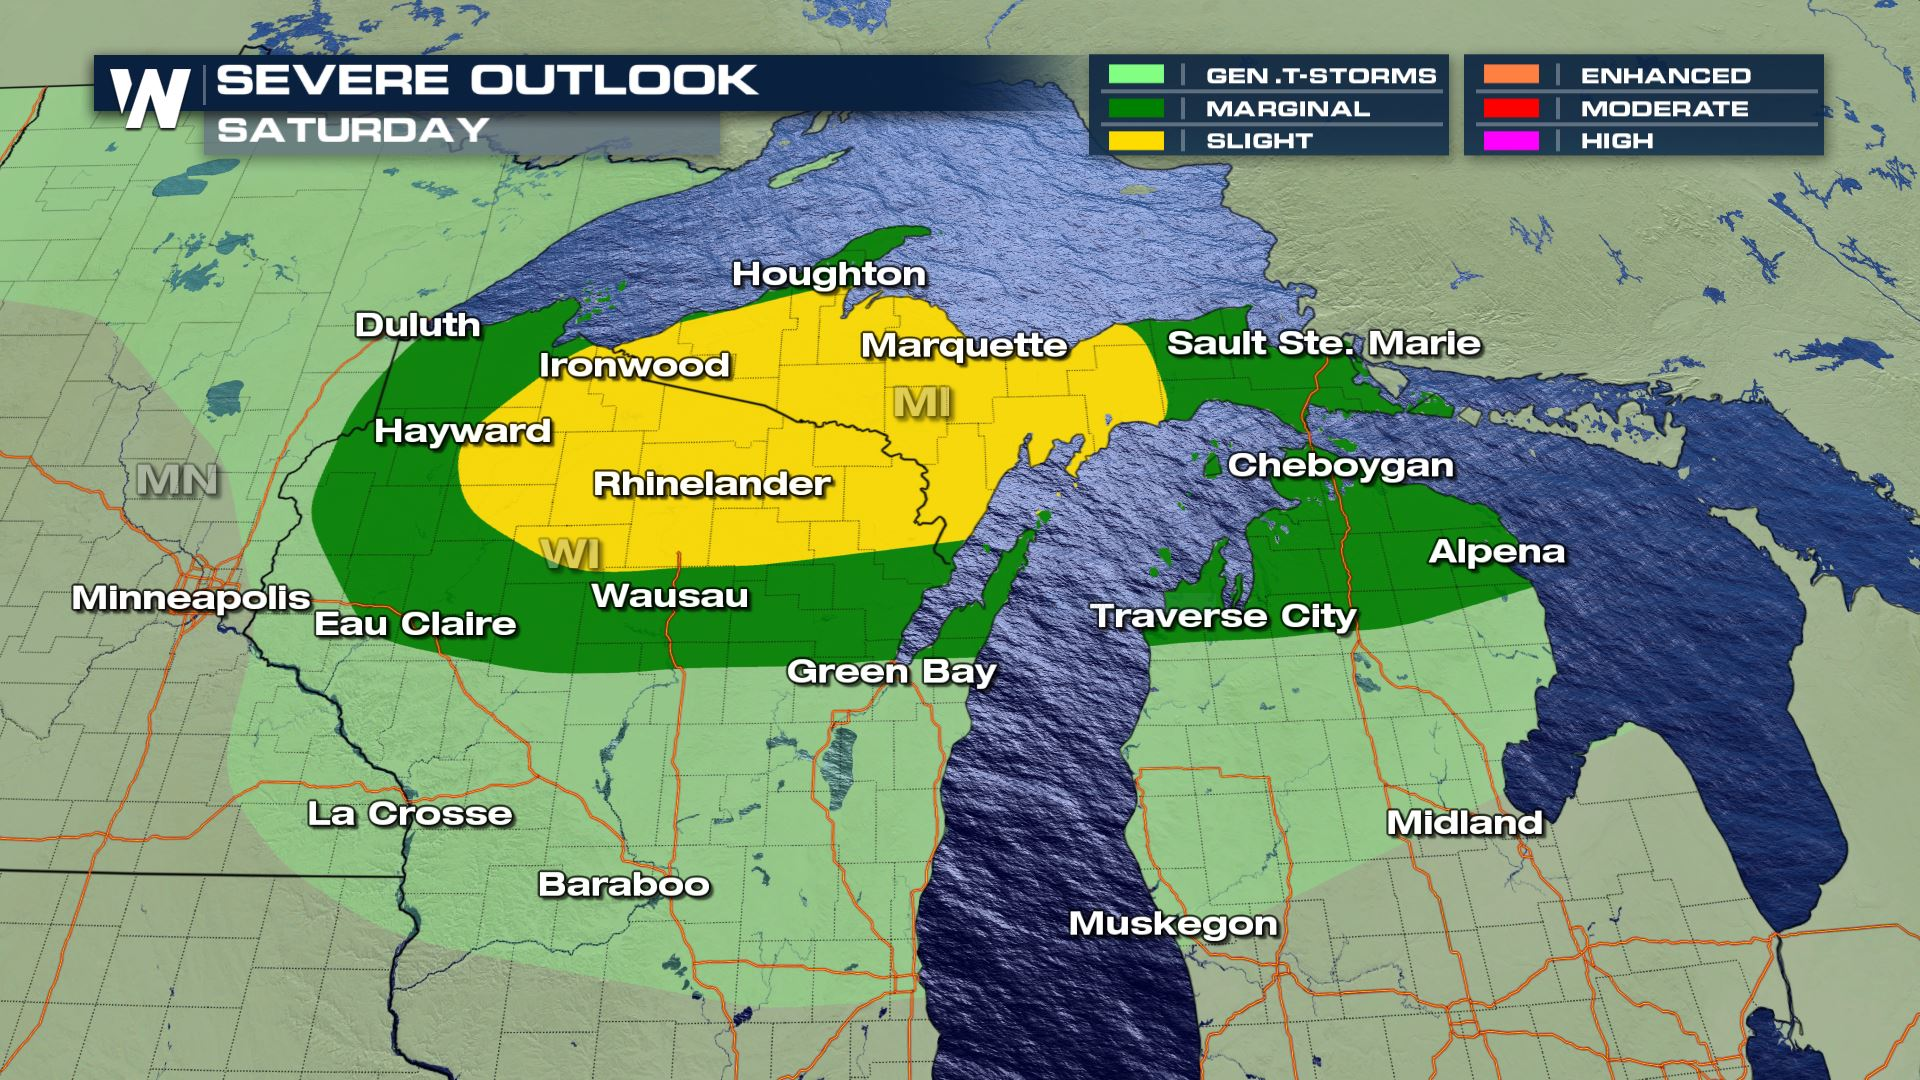 Another round of severe storms Saturday for the Great Lakes